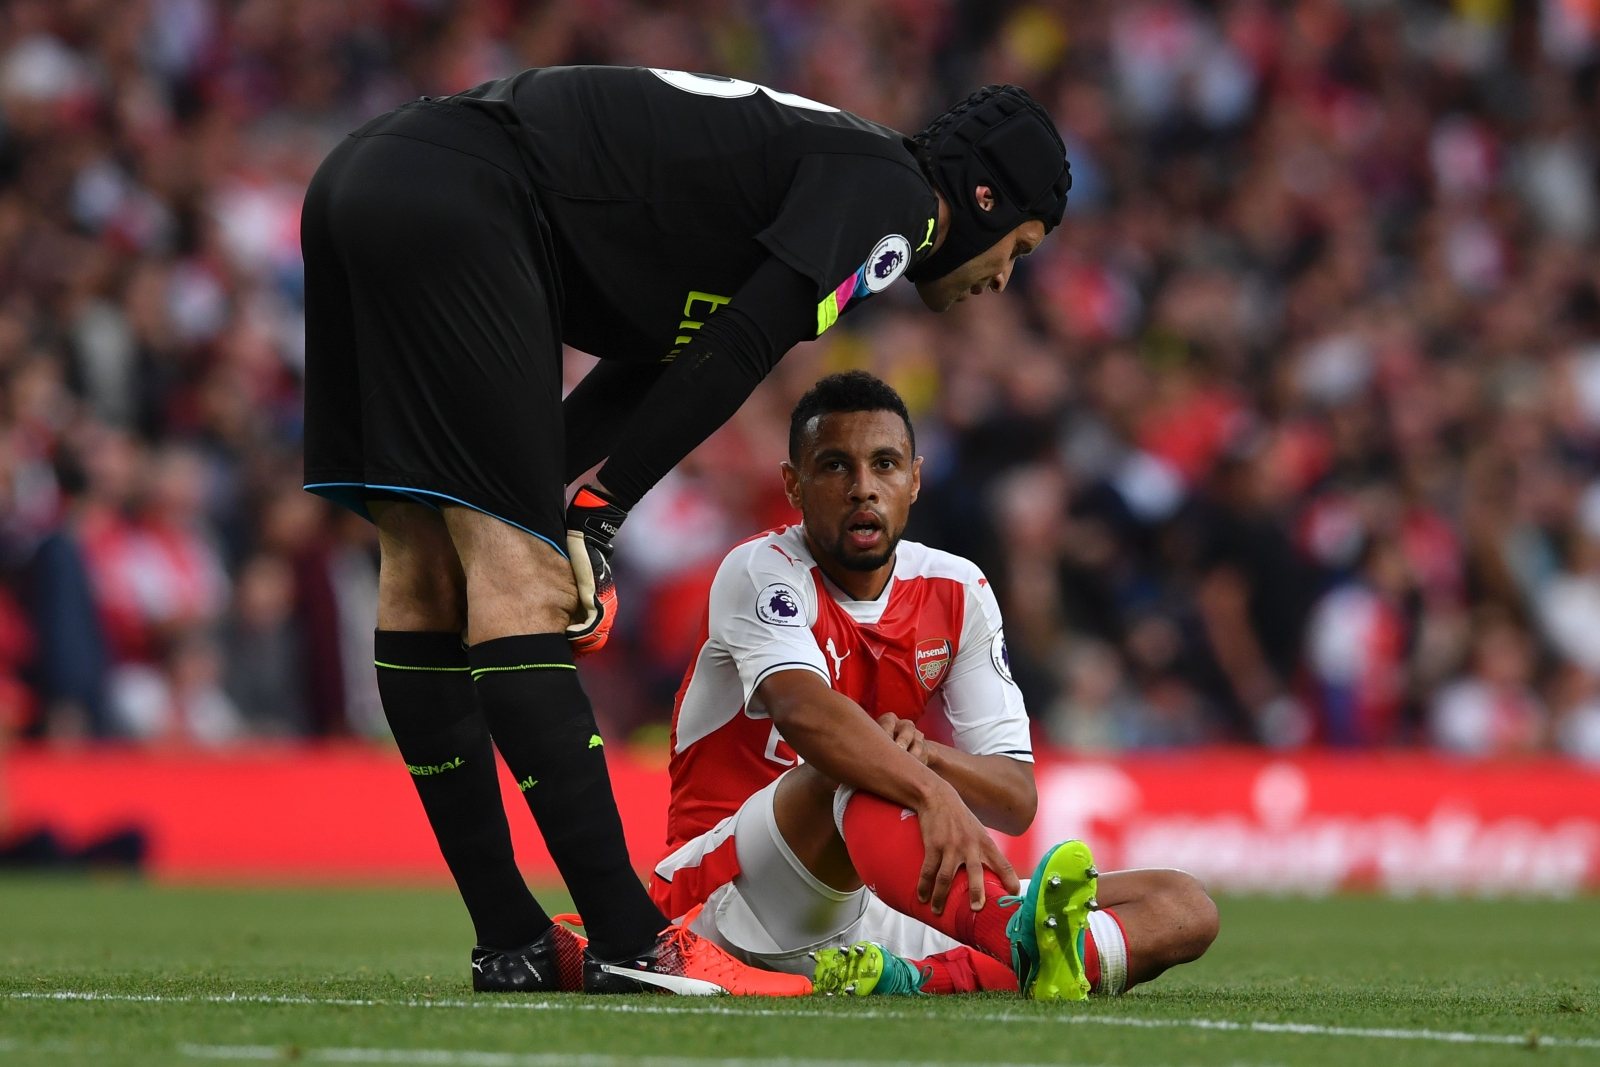 Arsenal injury news: Francis Coquelin set to miss three weeks with knee problem